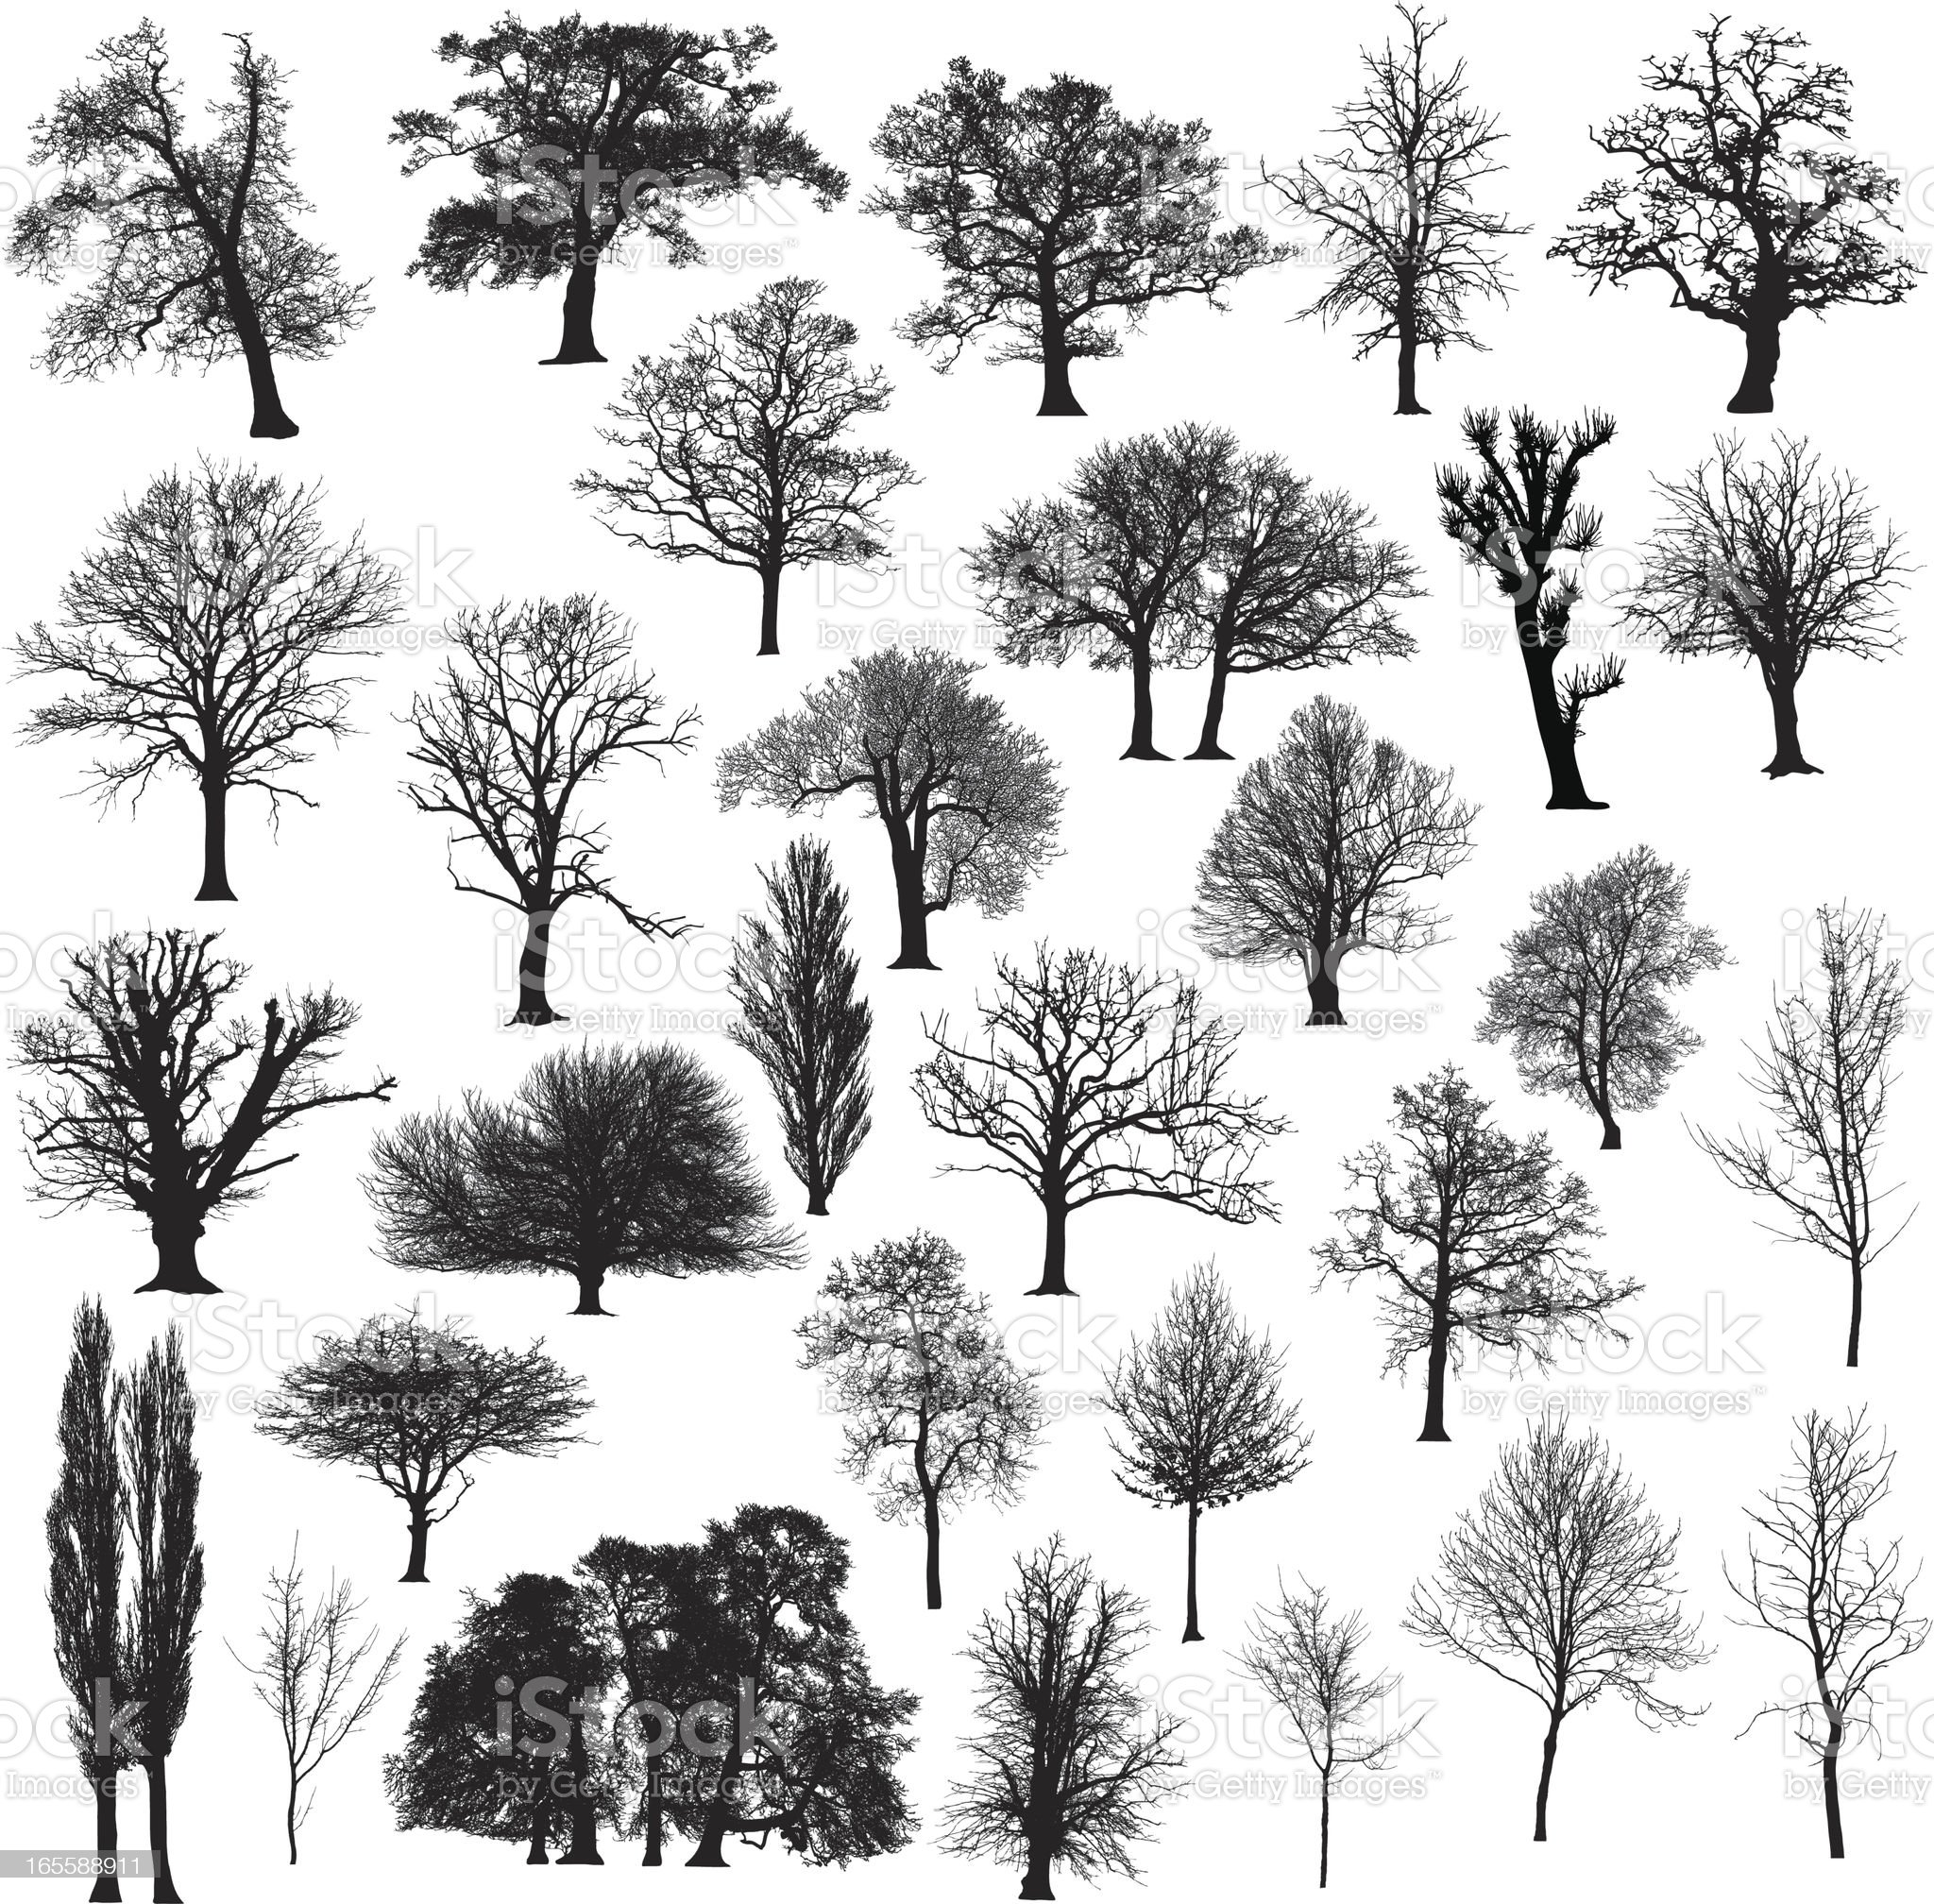 Winter tree silhouette collection royalty-free stock vector art